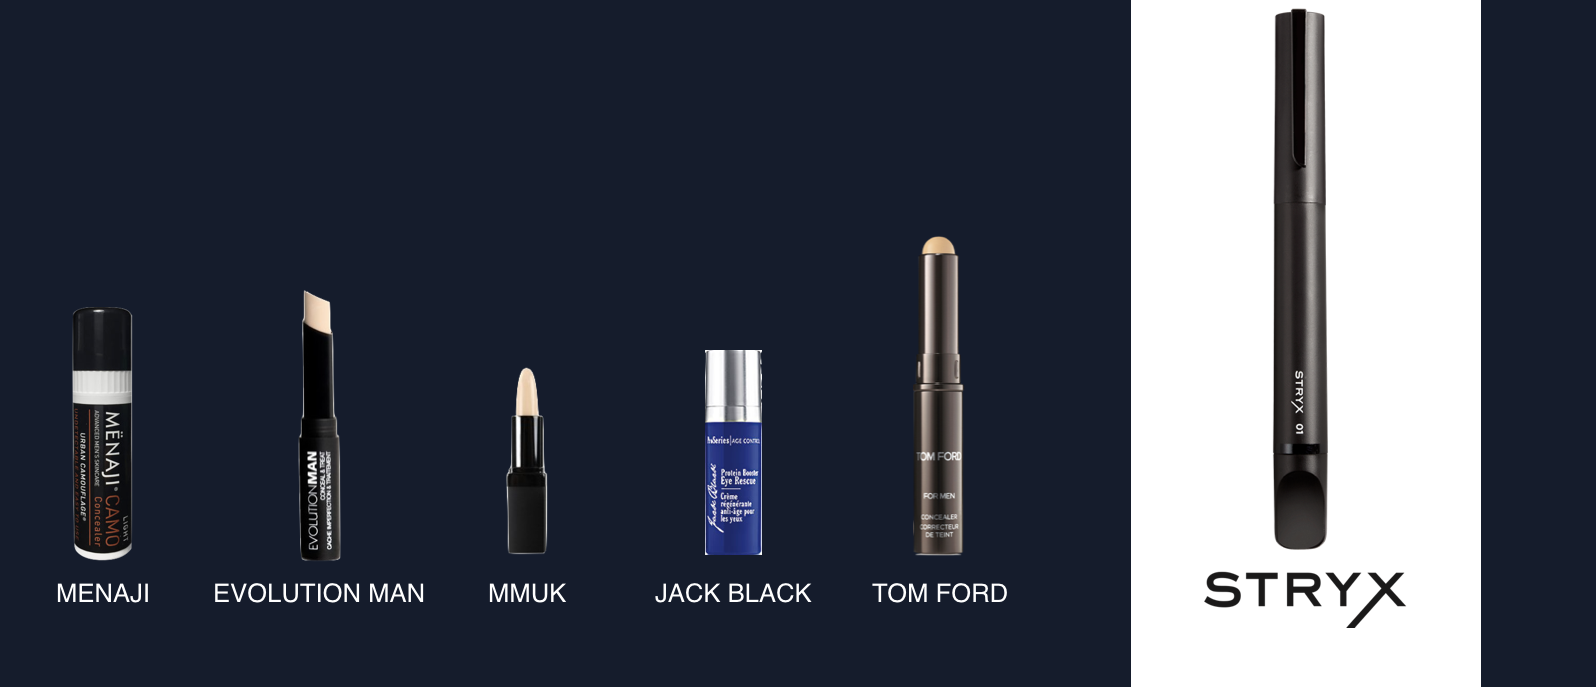 I mean, does this image not really say it all? Which product would  you  want to carry around with you all day?